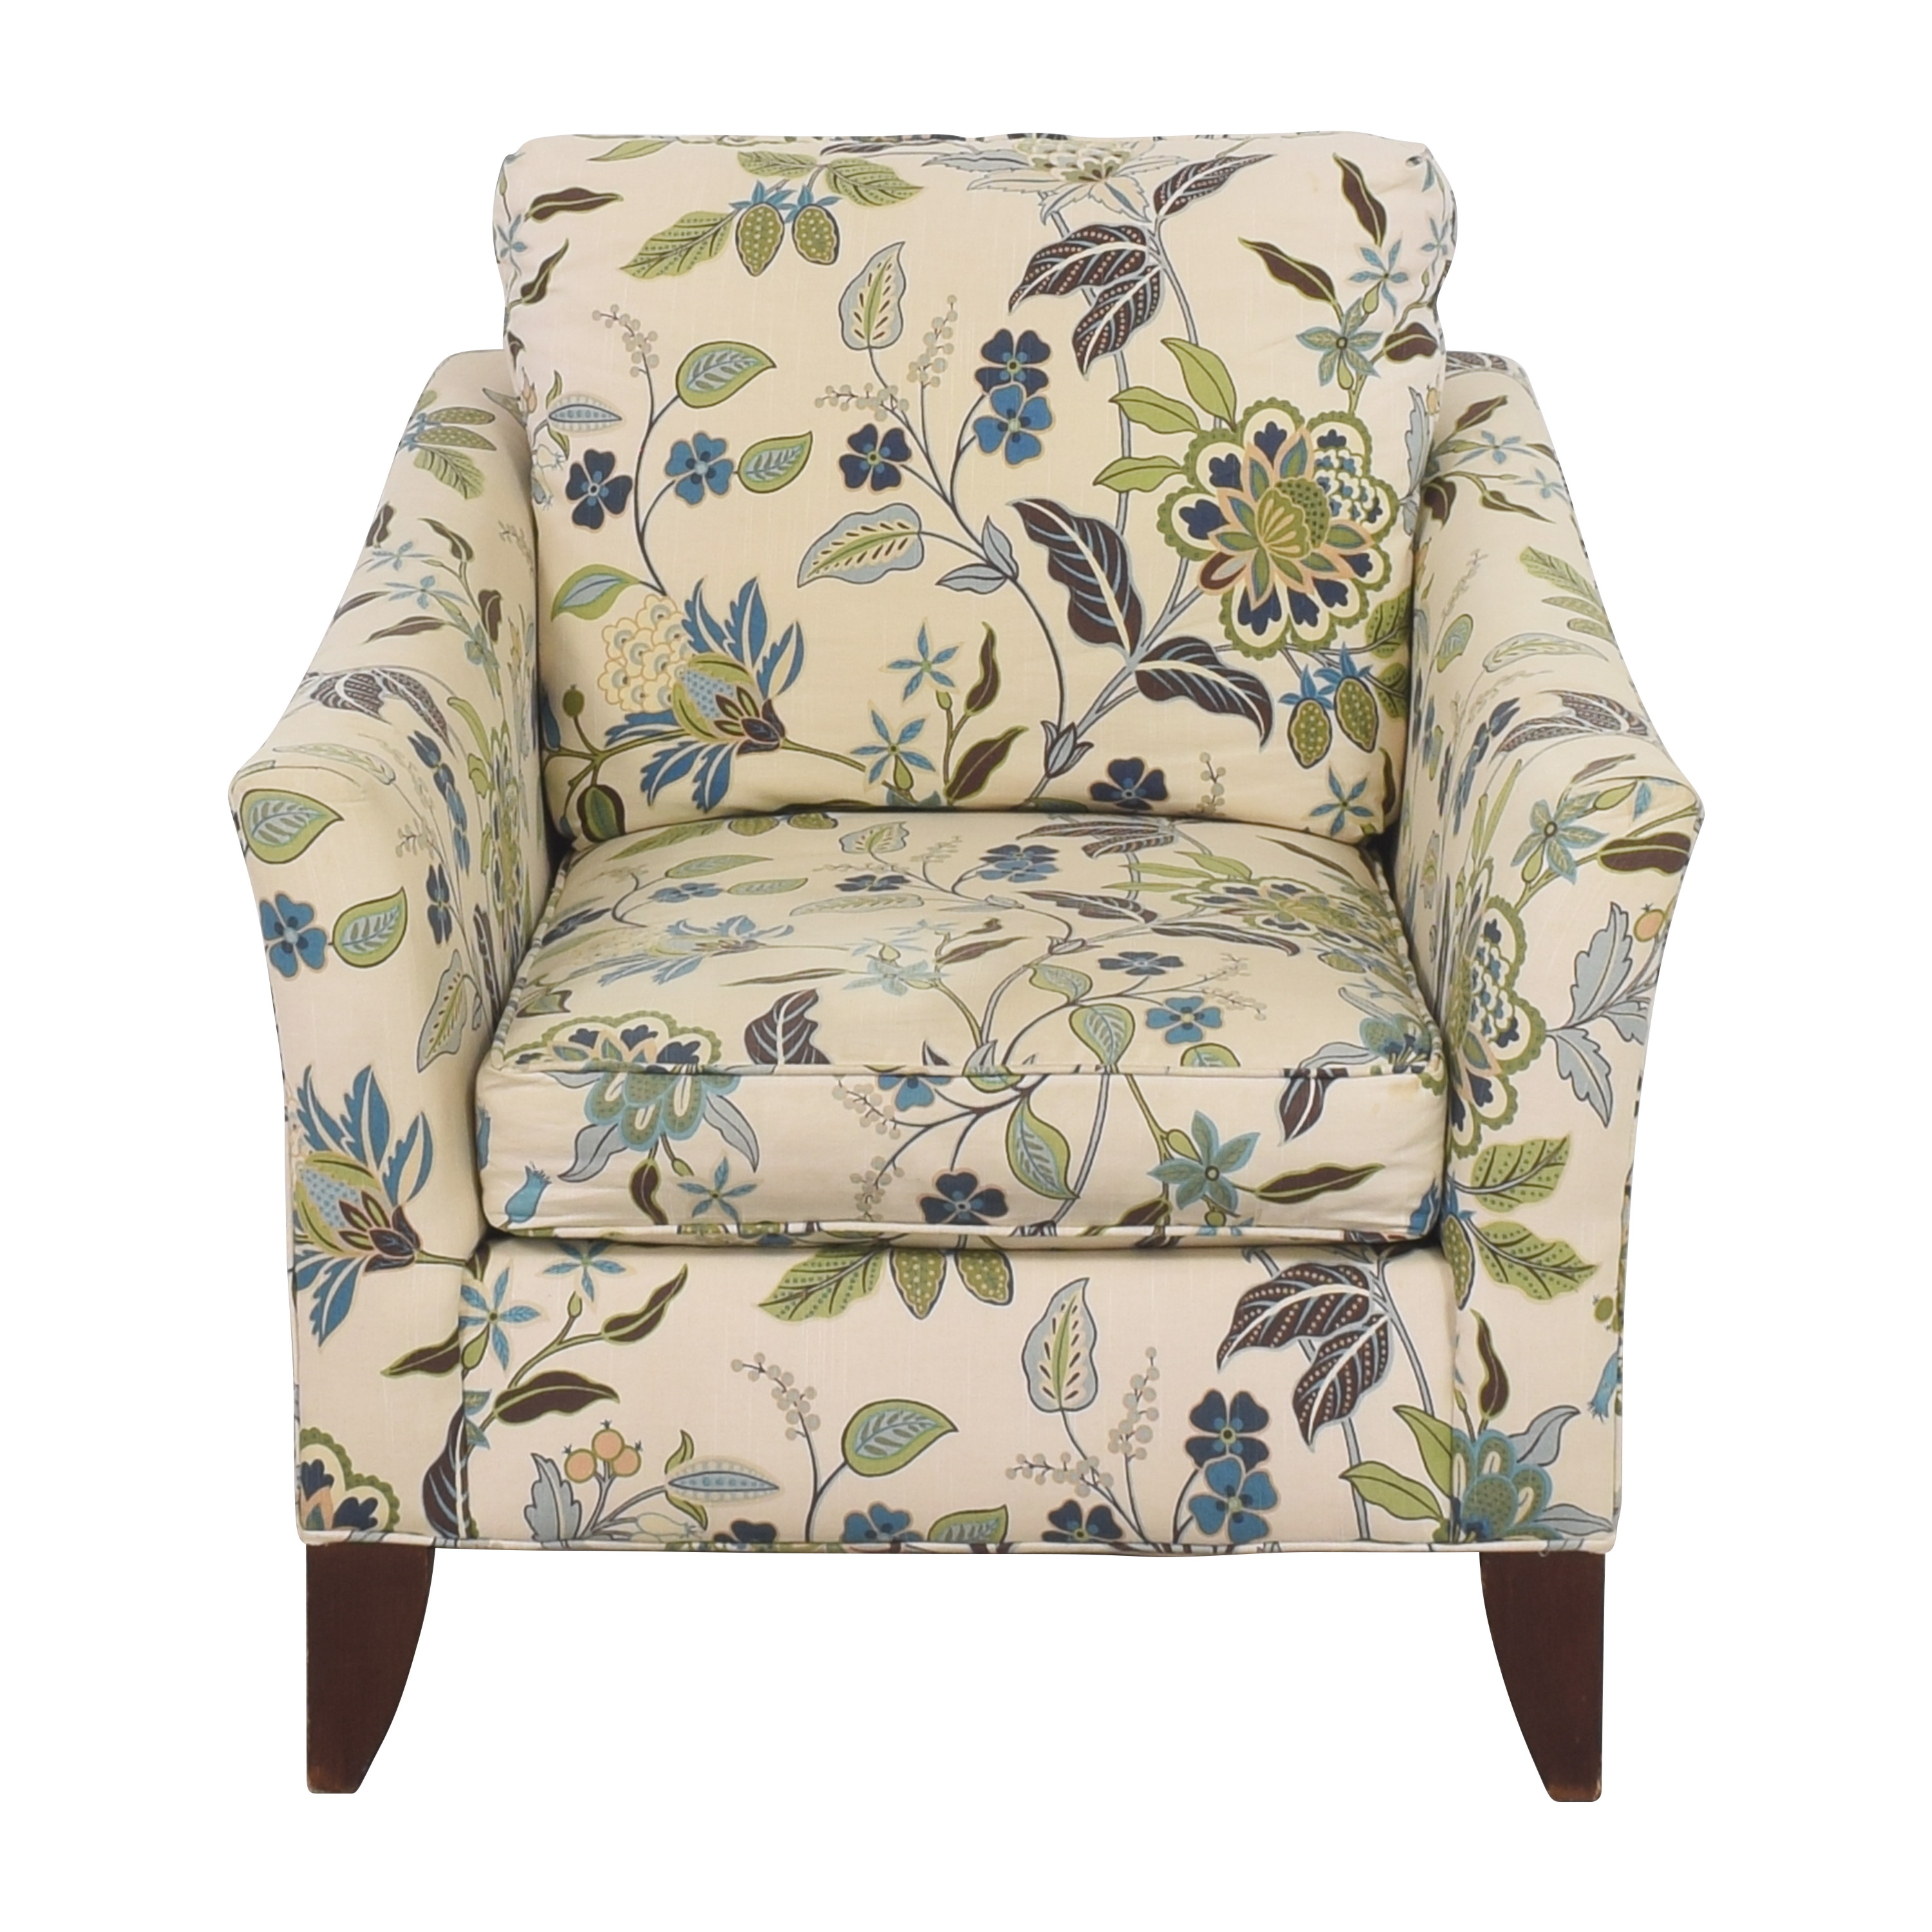 Craftmaster Furniture Craftmaster Floral Accent Chair used